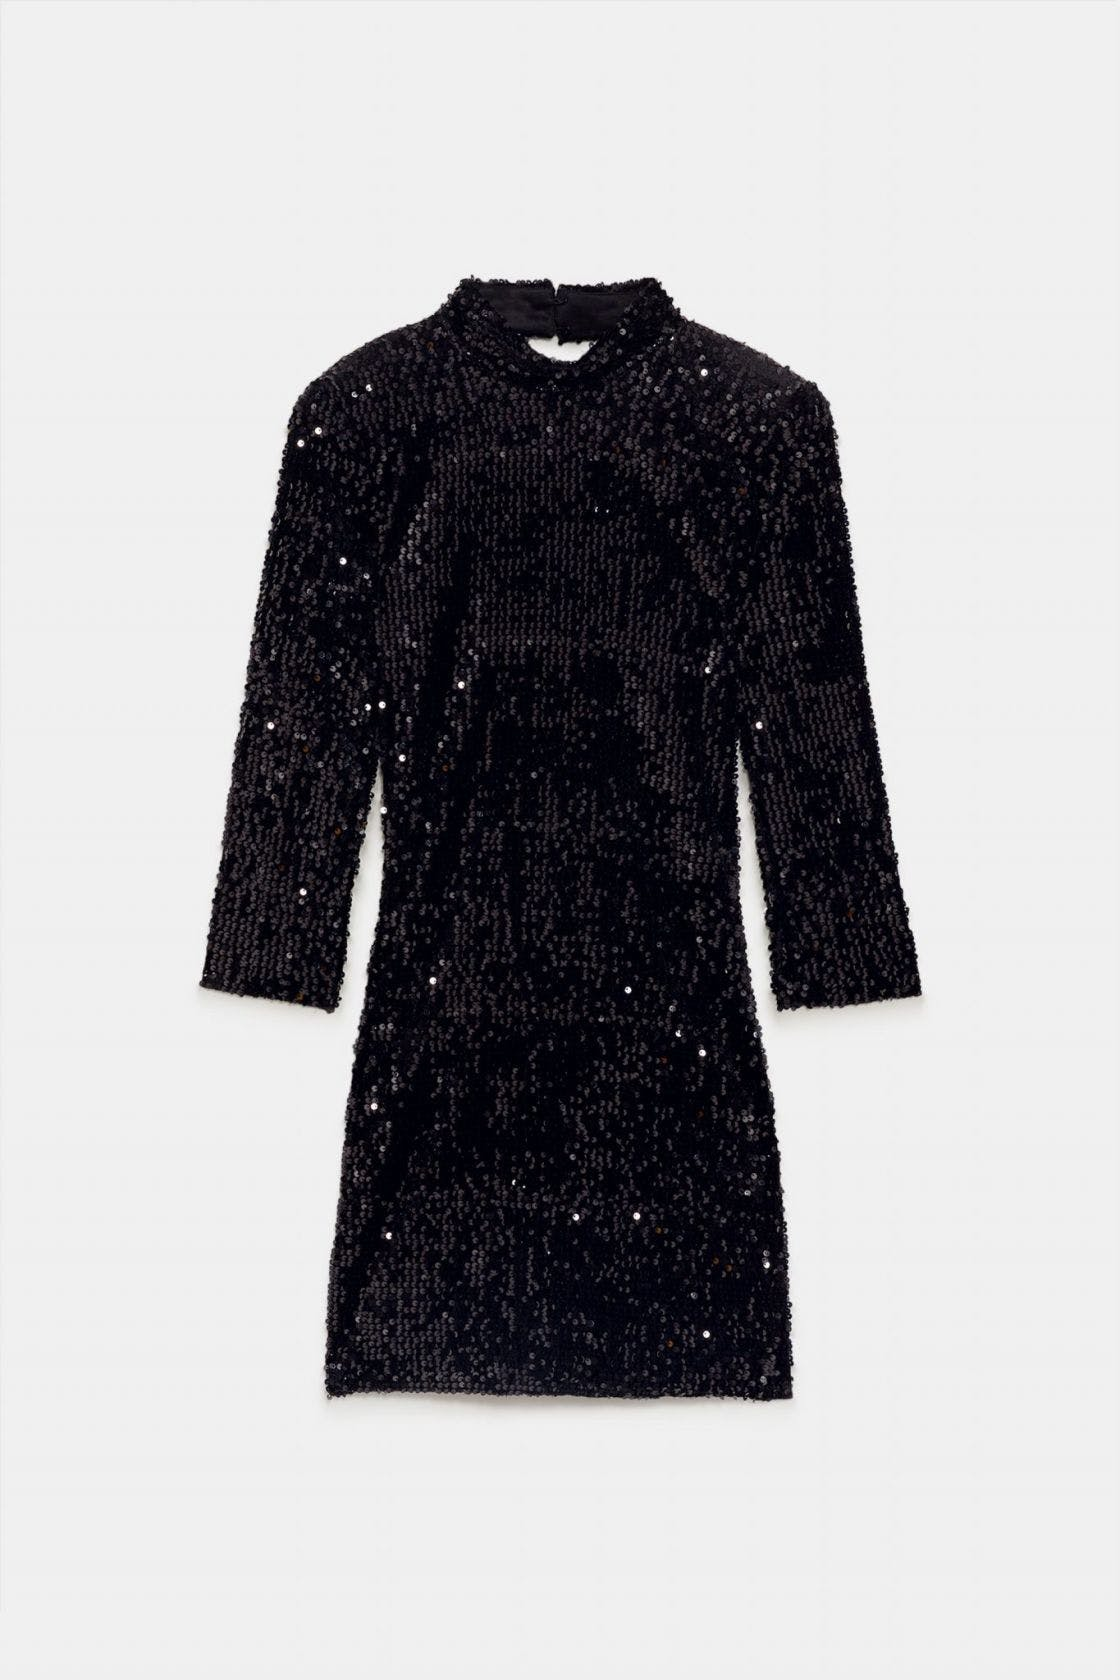 fc90f29b 13 sequin dresses to get you in the Christmas party mood